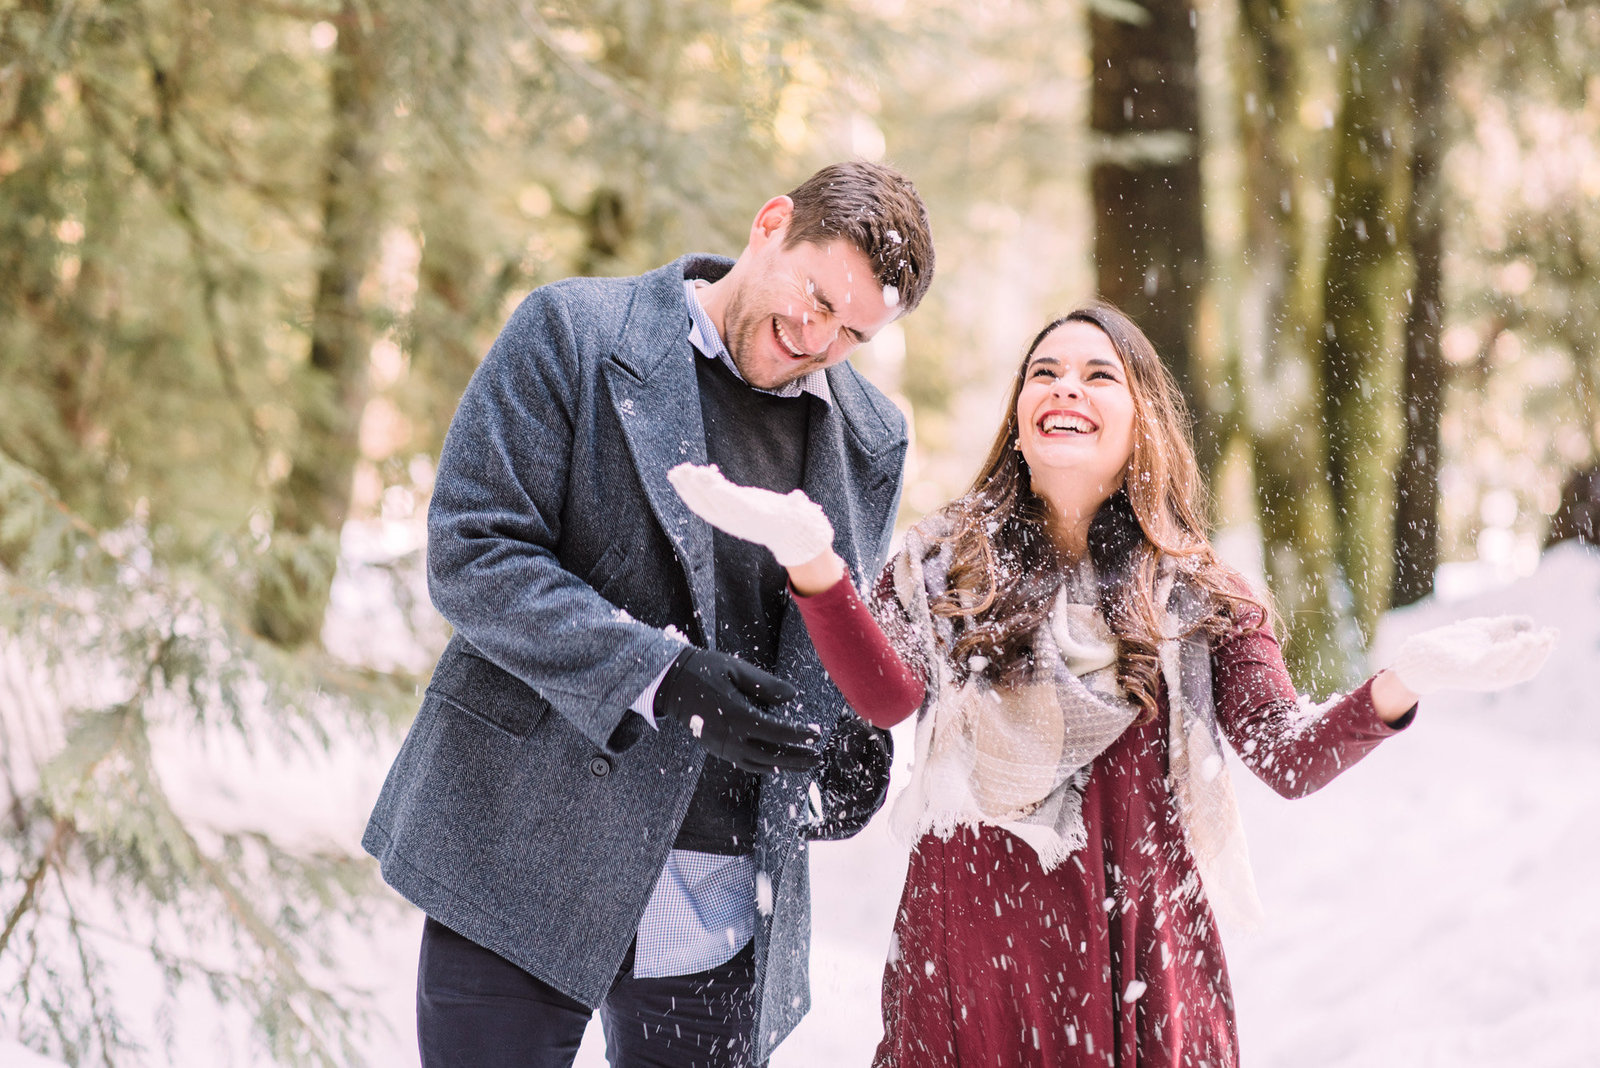 Snowy_Engagement_Julianna_J_Photography_-002